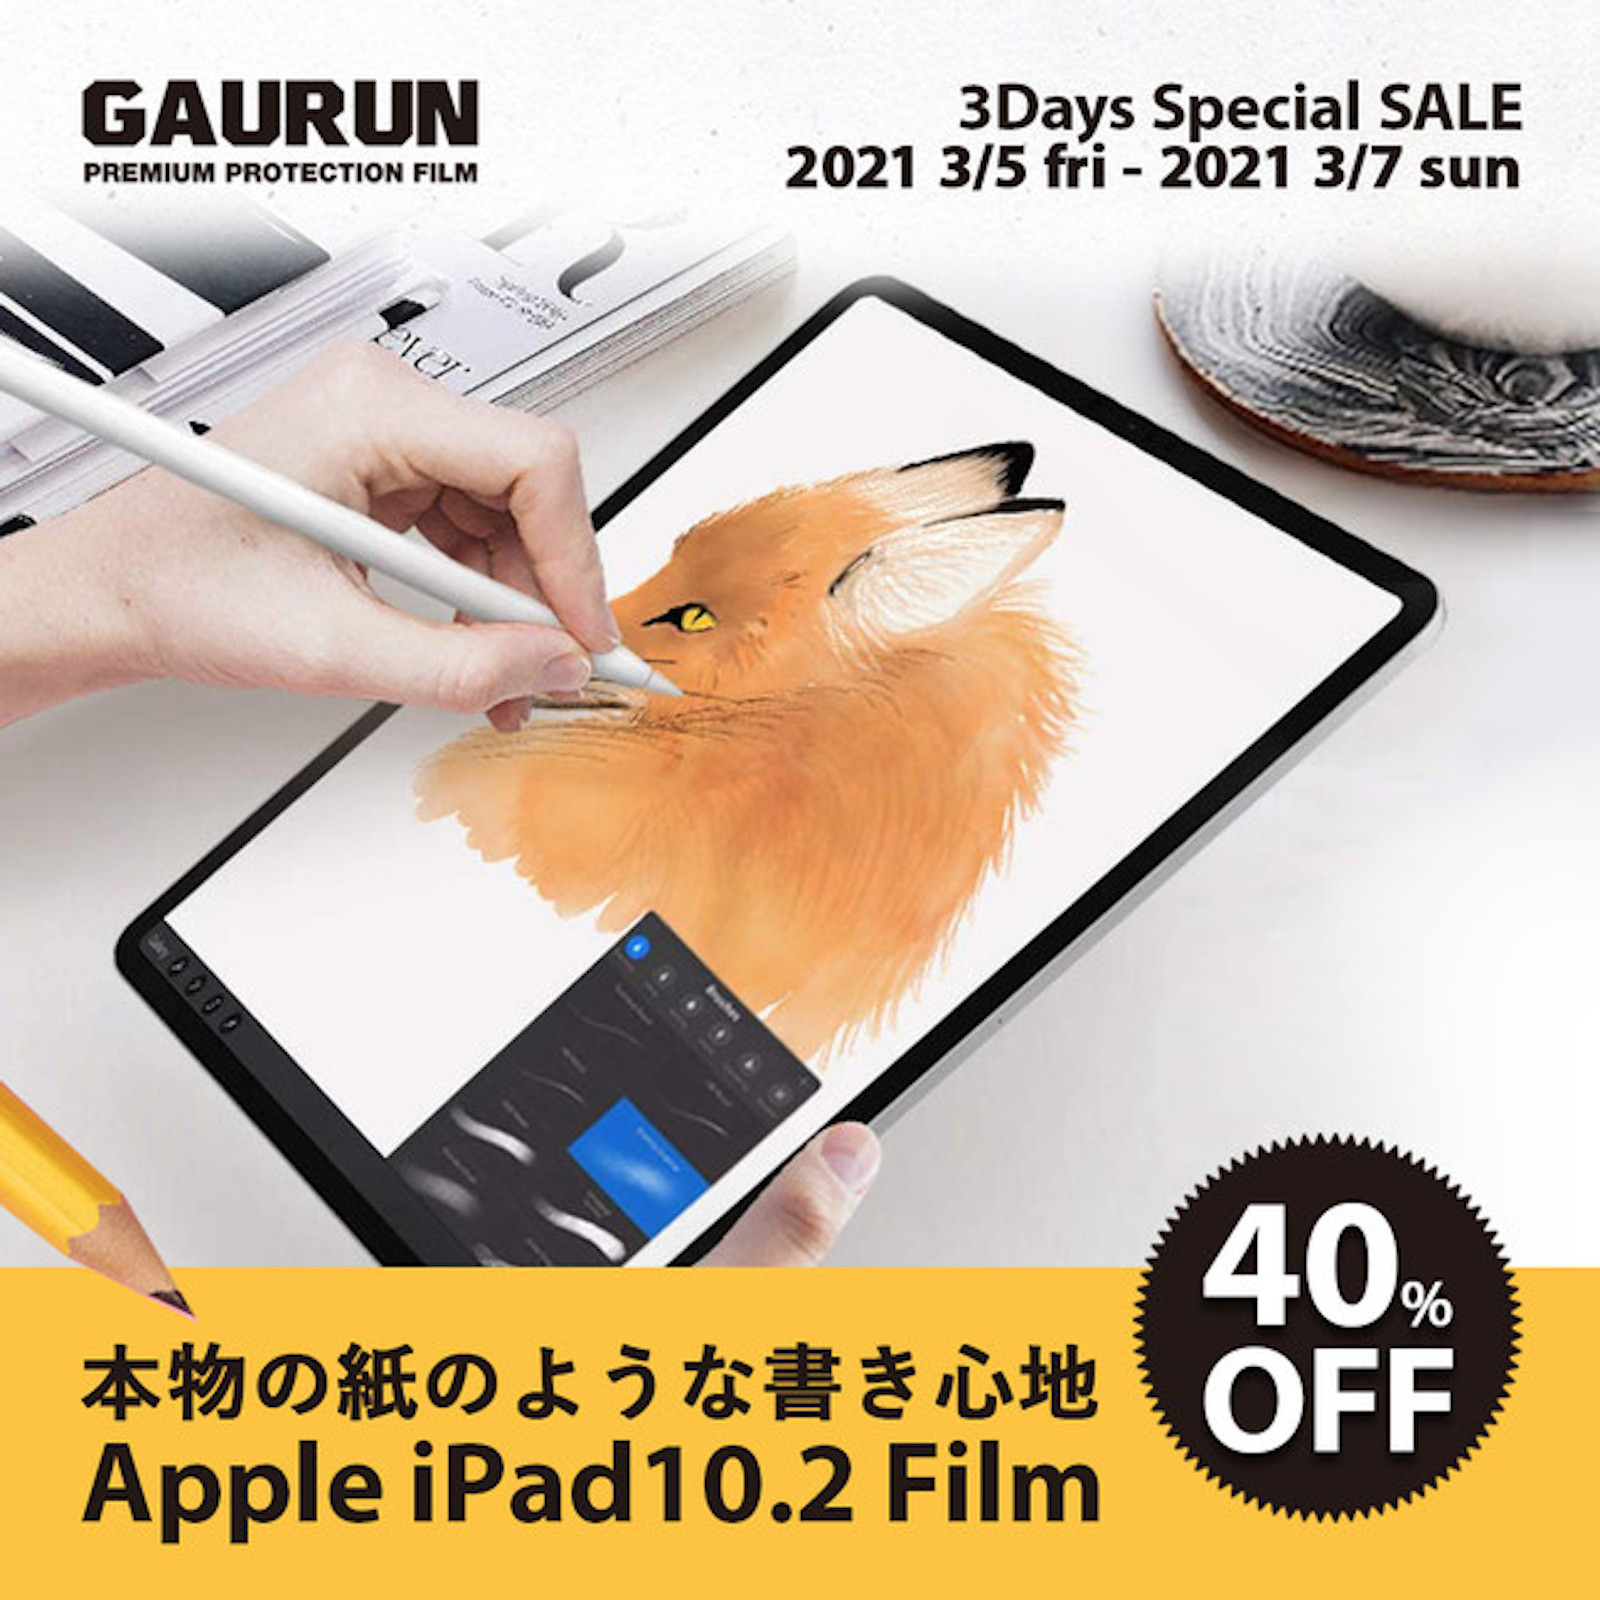 GAURUN iPad film sale